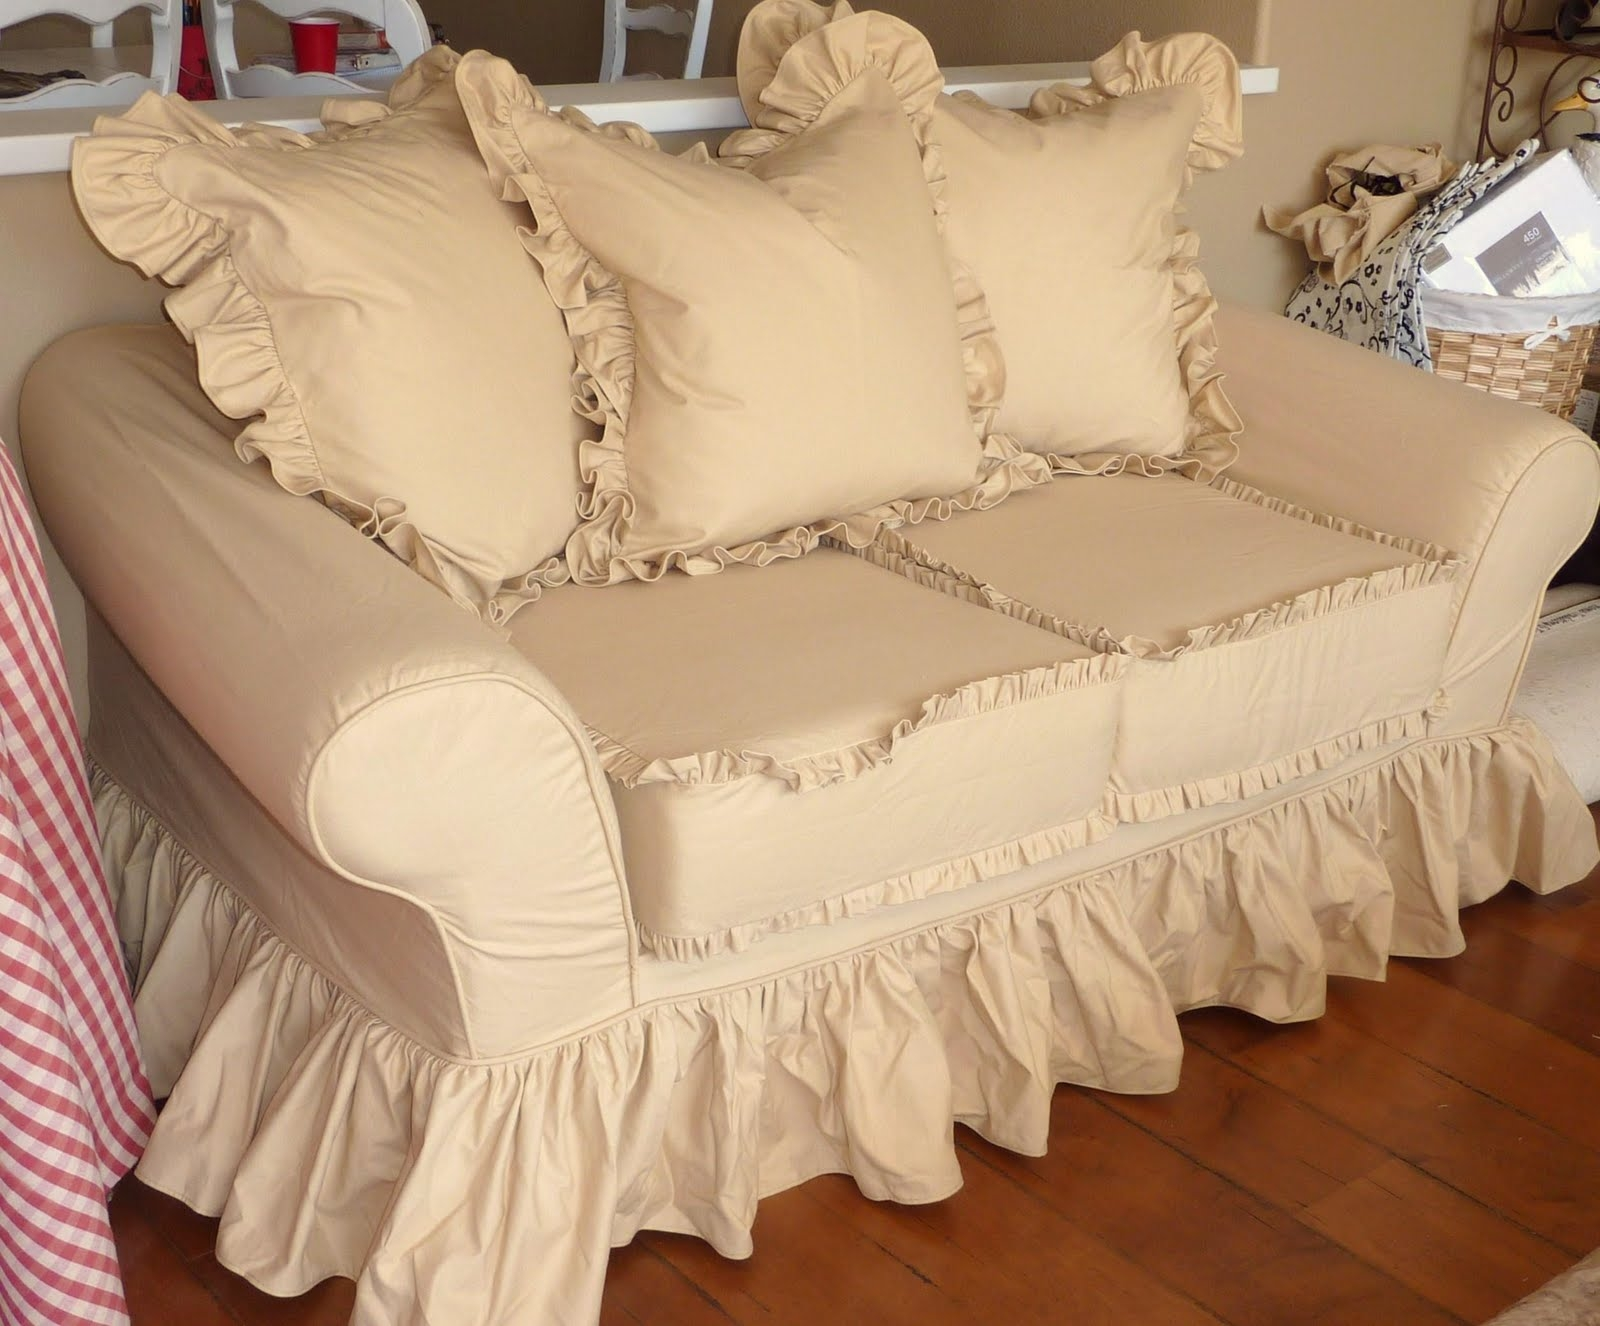 ... Designer Sofa Covers Online Hereo Sofa Regarding Contemporary Sofa  Slipcovers Image 4 Of 15 ...